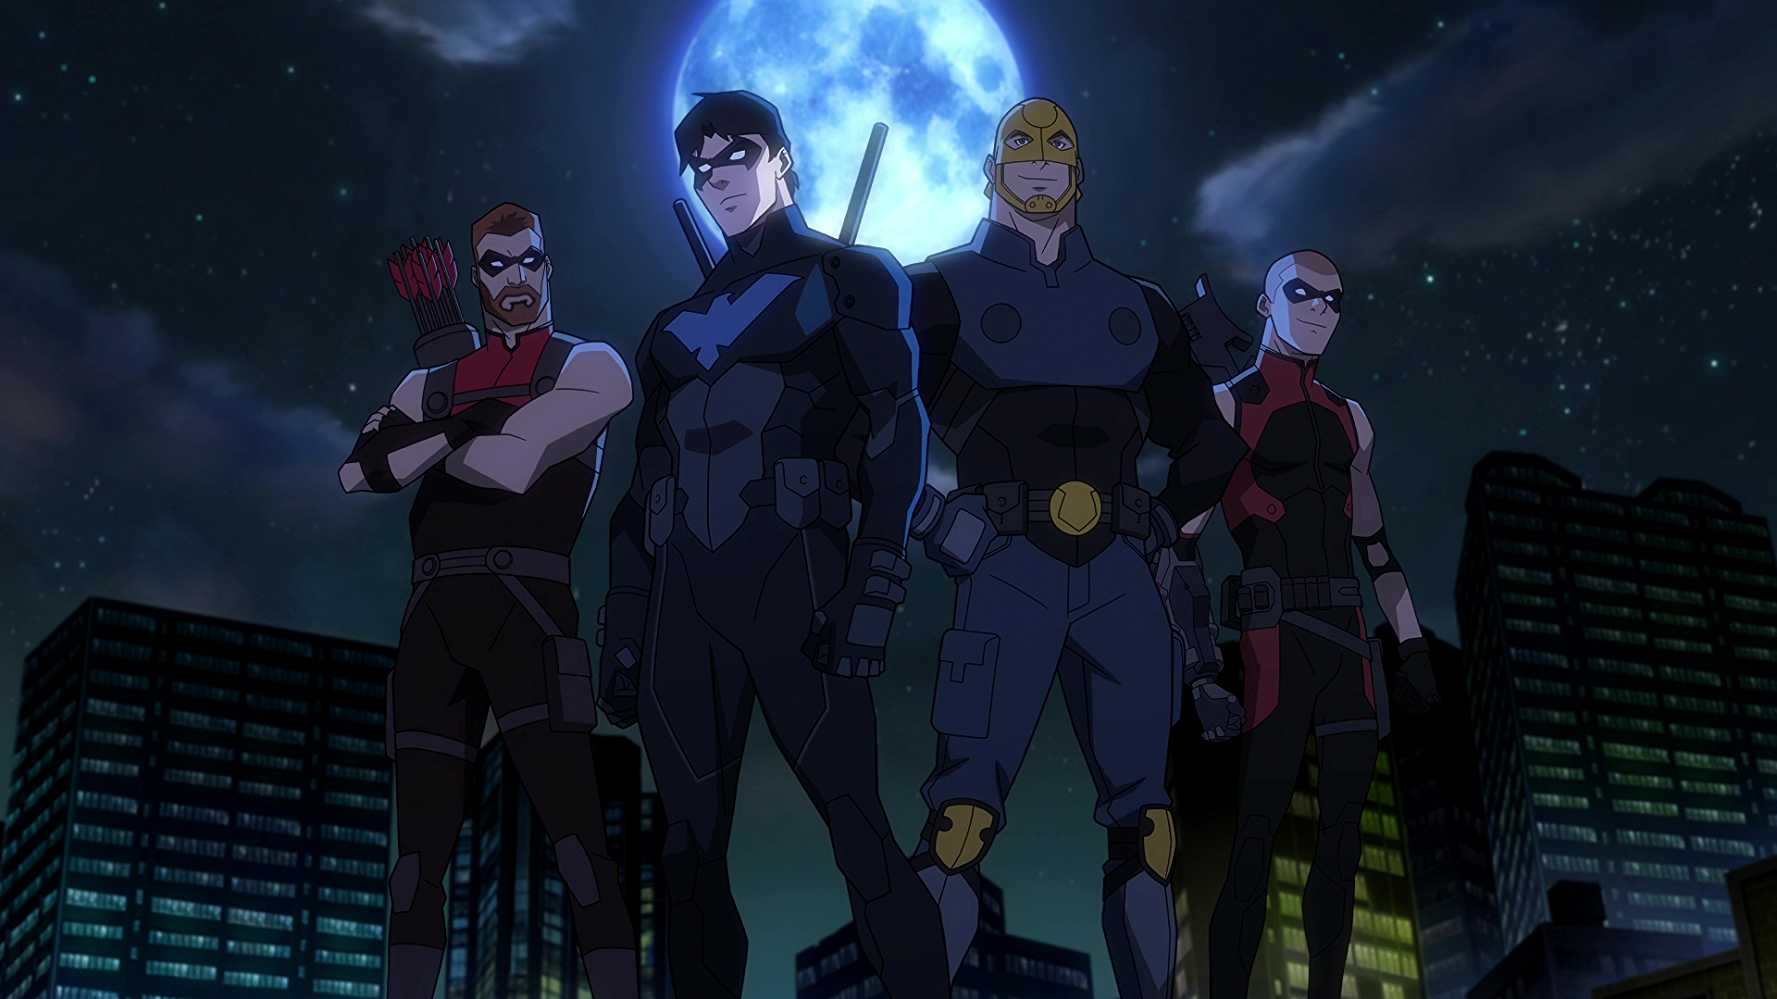 Red Arrow, Nightwing, Guardian, and Arsenal in 'Young Justice: Outsiders'. Source: IMDB